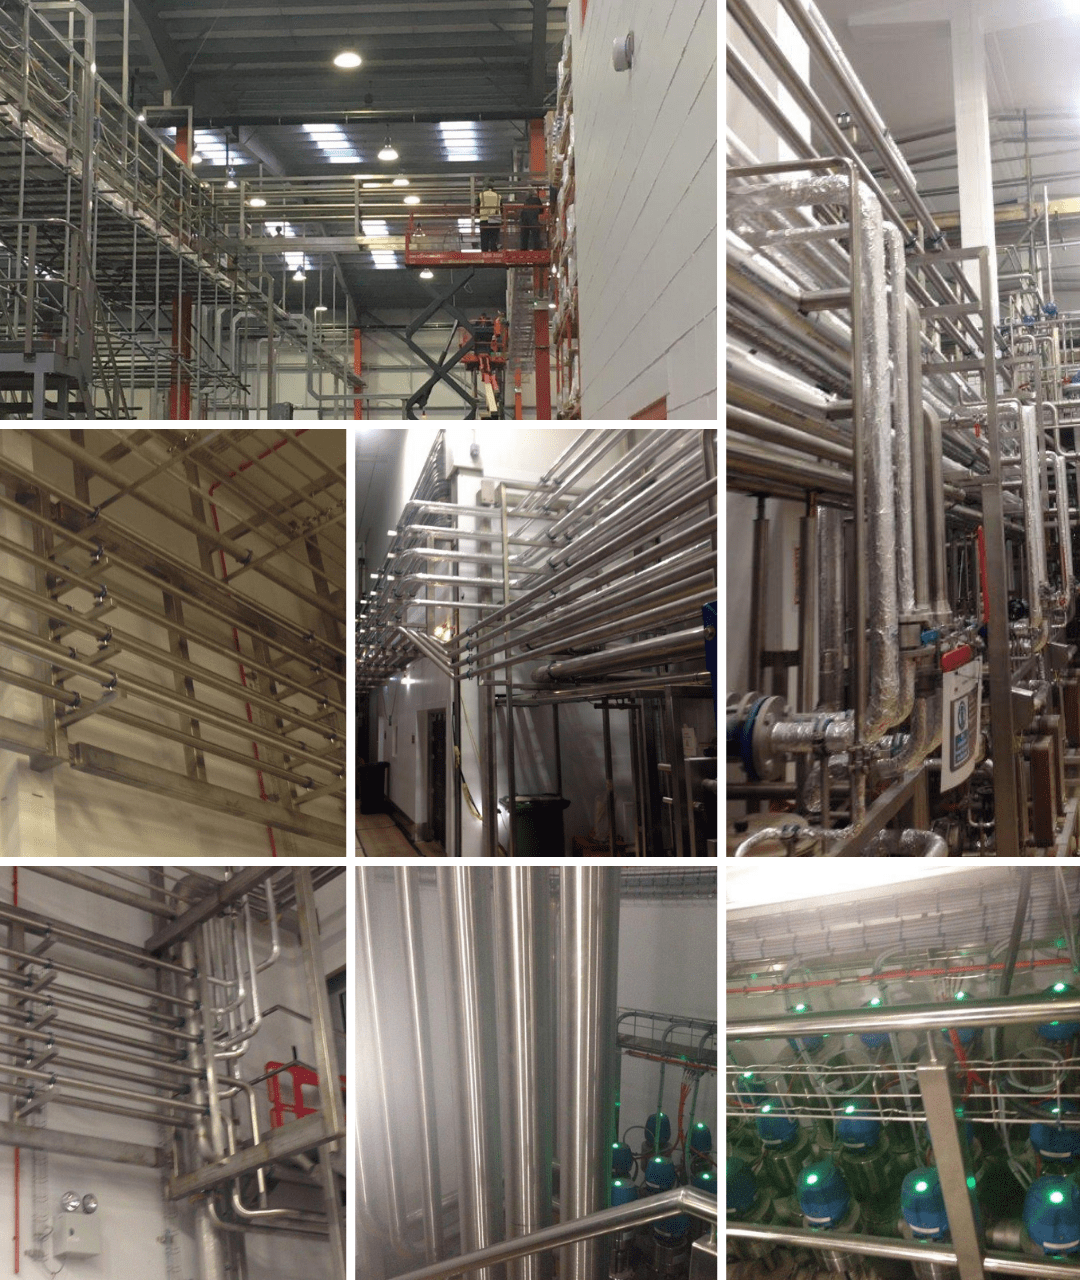 Pipe Welding Fabrication Solutions for the Industrial Commercial FMCG sectors covering all aspects of Process Hygienic & Energy pipework systems